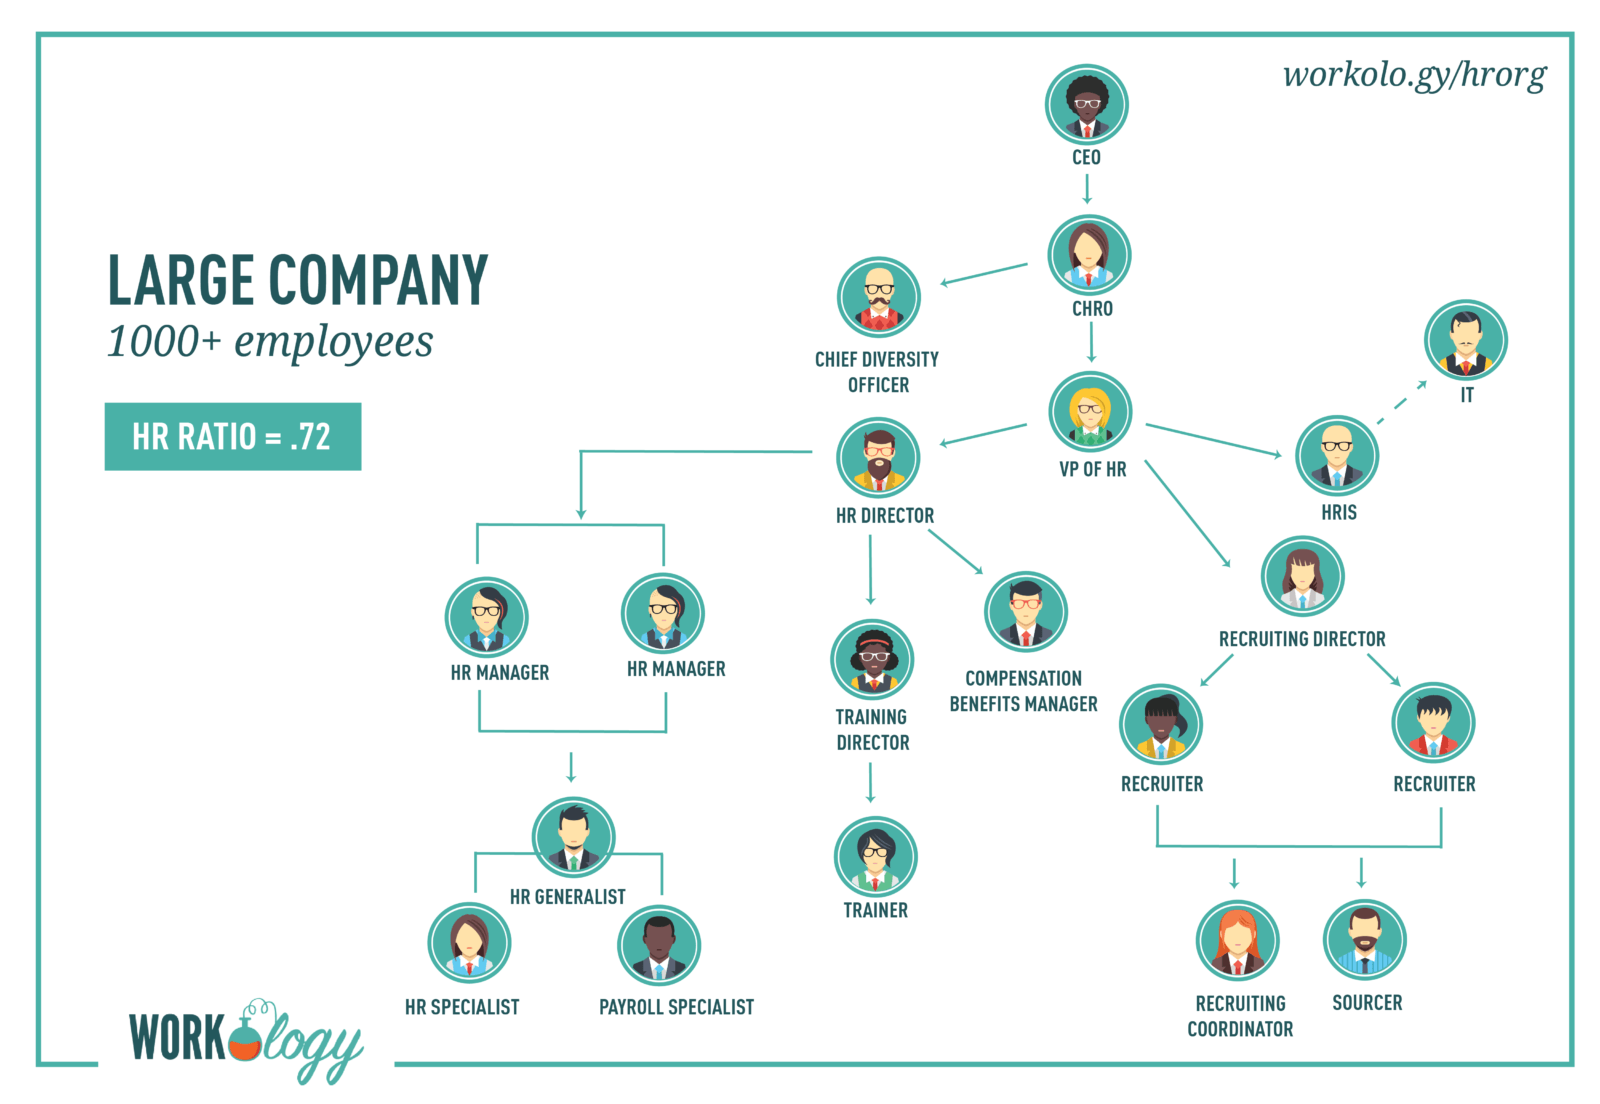 Your Guide to the HR Organizational Chart and Department